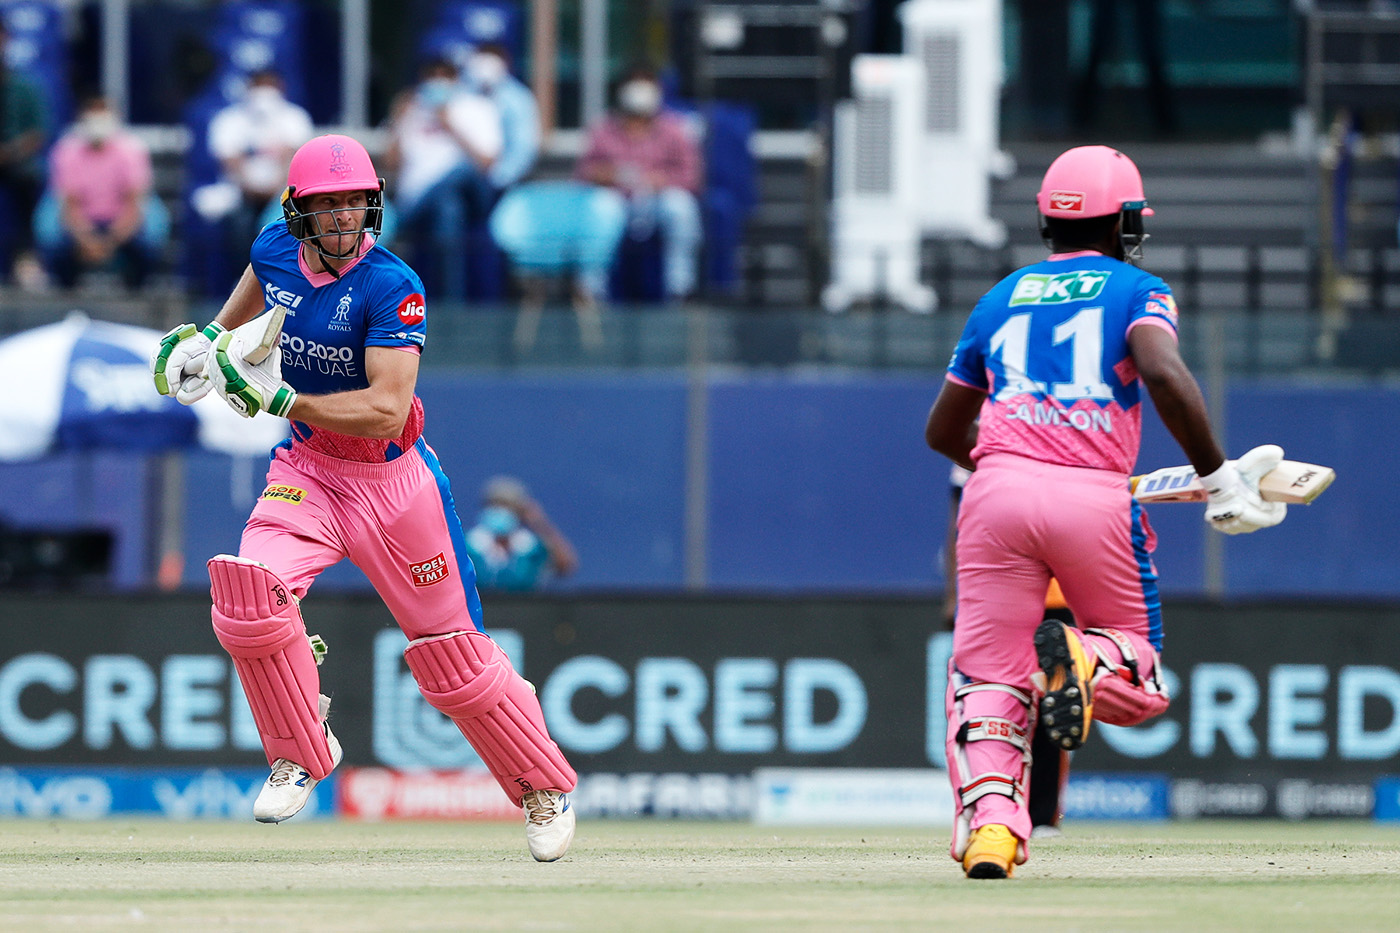 The fast lane: agile running between the wickets is a major asset in T20s